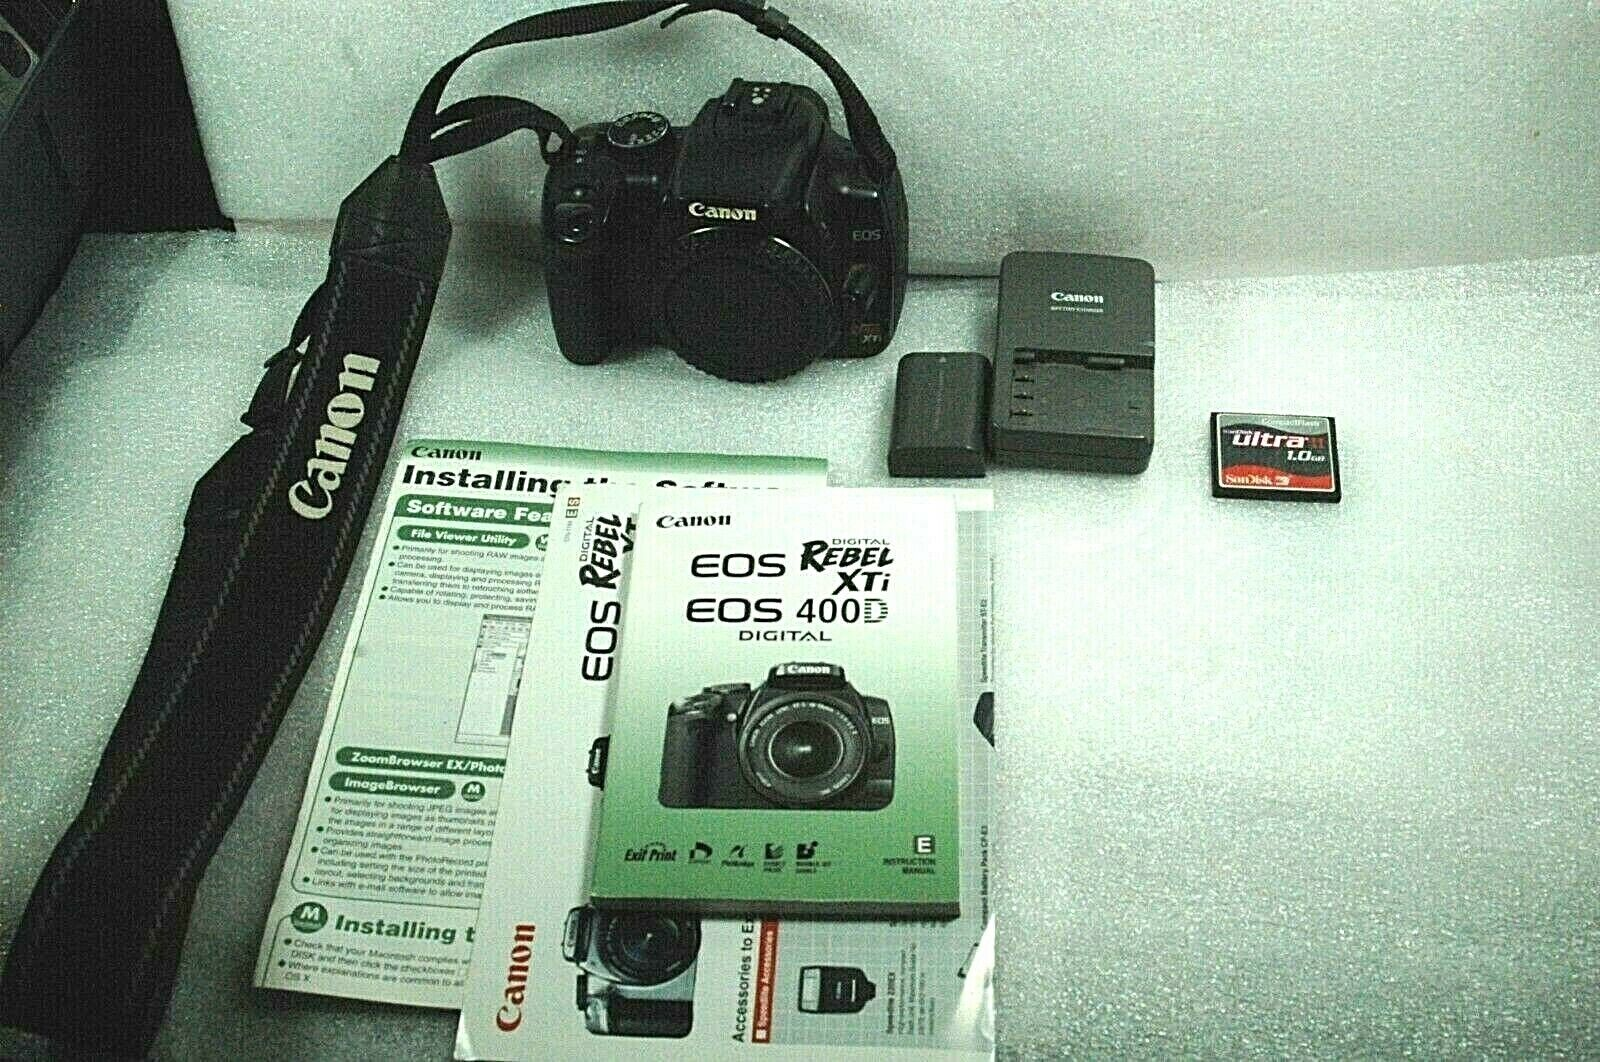 Canon EOS Digital Rebel XTi / EOS 400D 10.1MP DSLR Body Only Very Good - $69.99